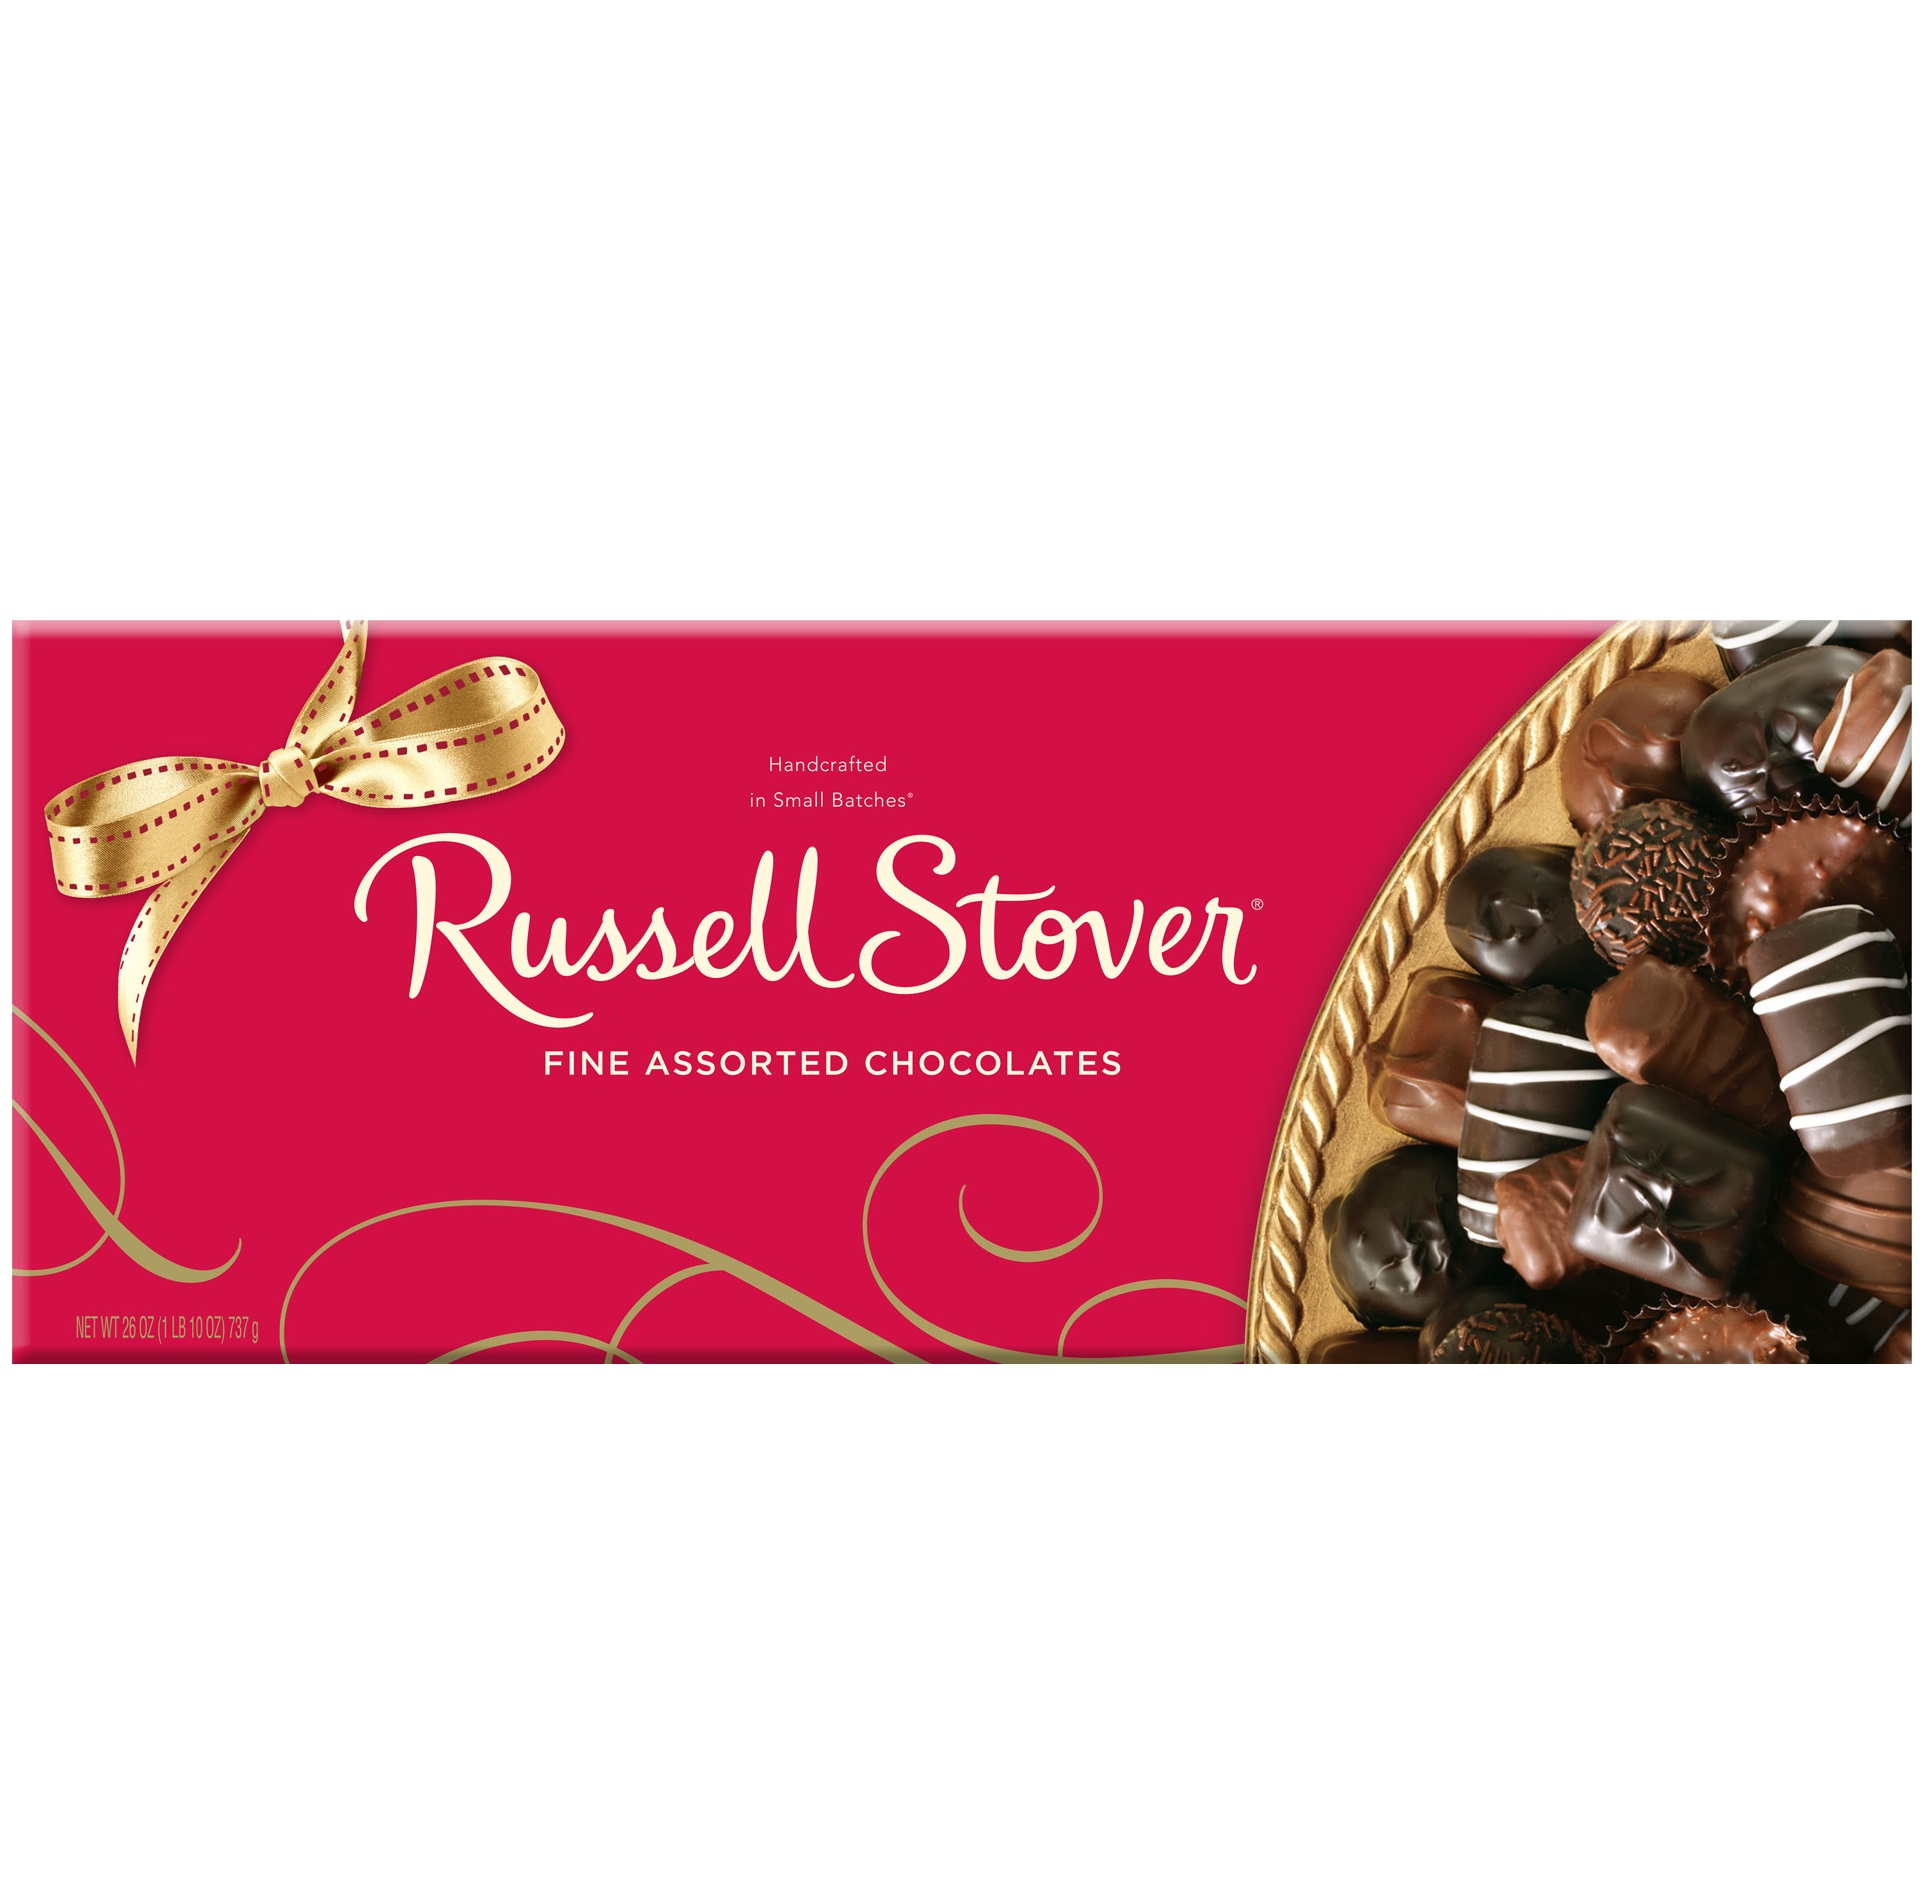 Russell Stover Assorted Chocolate WOW Box 26oz